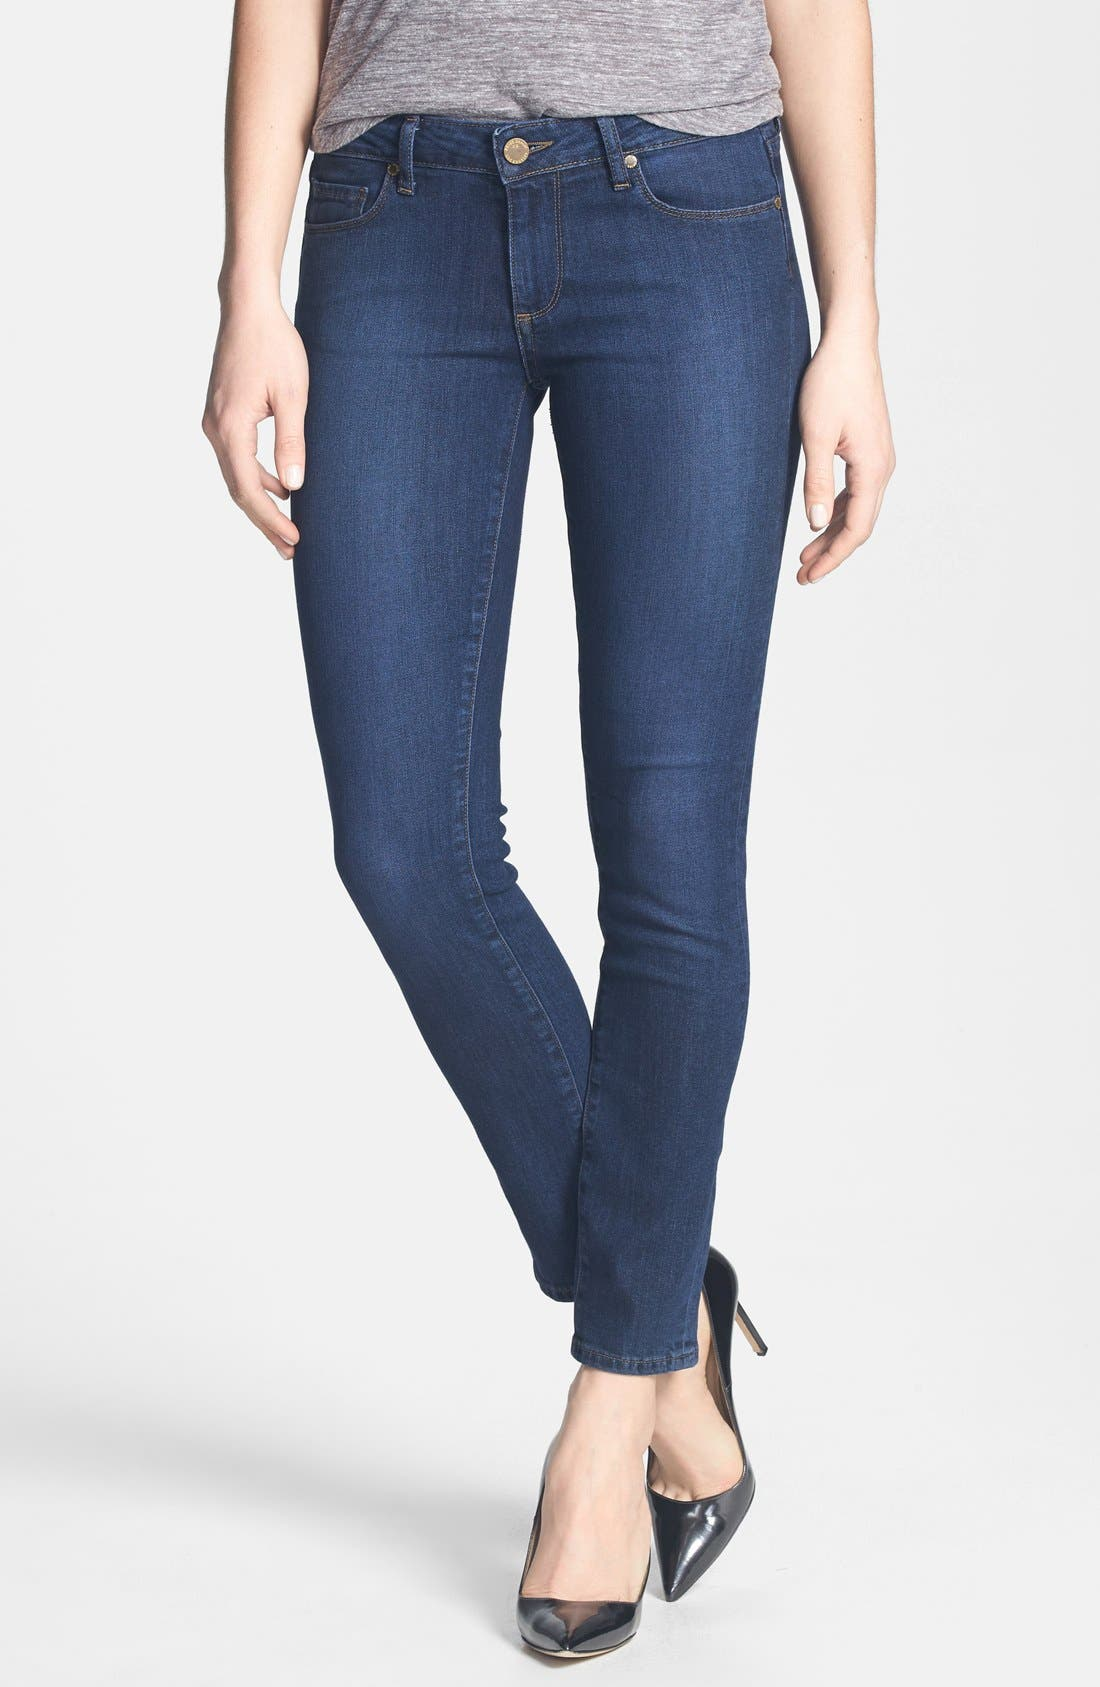 Alternate Image 1 Selected - Paige Denim 'Skyline' Skinny Ankle Jeans (Claire)